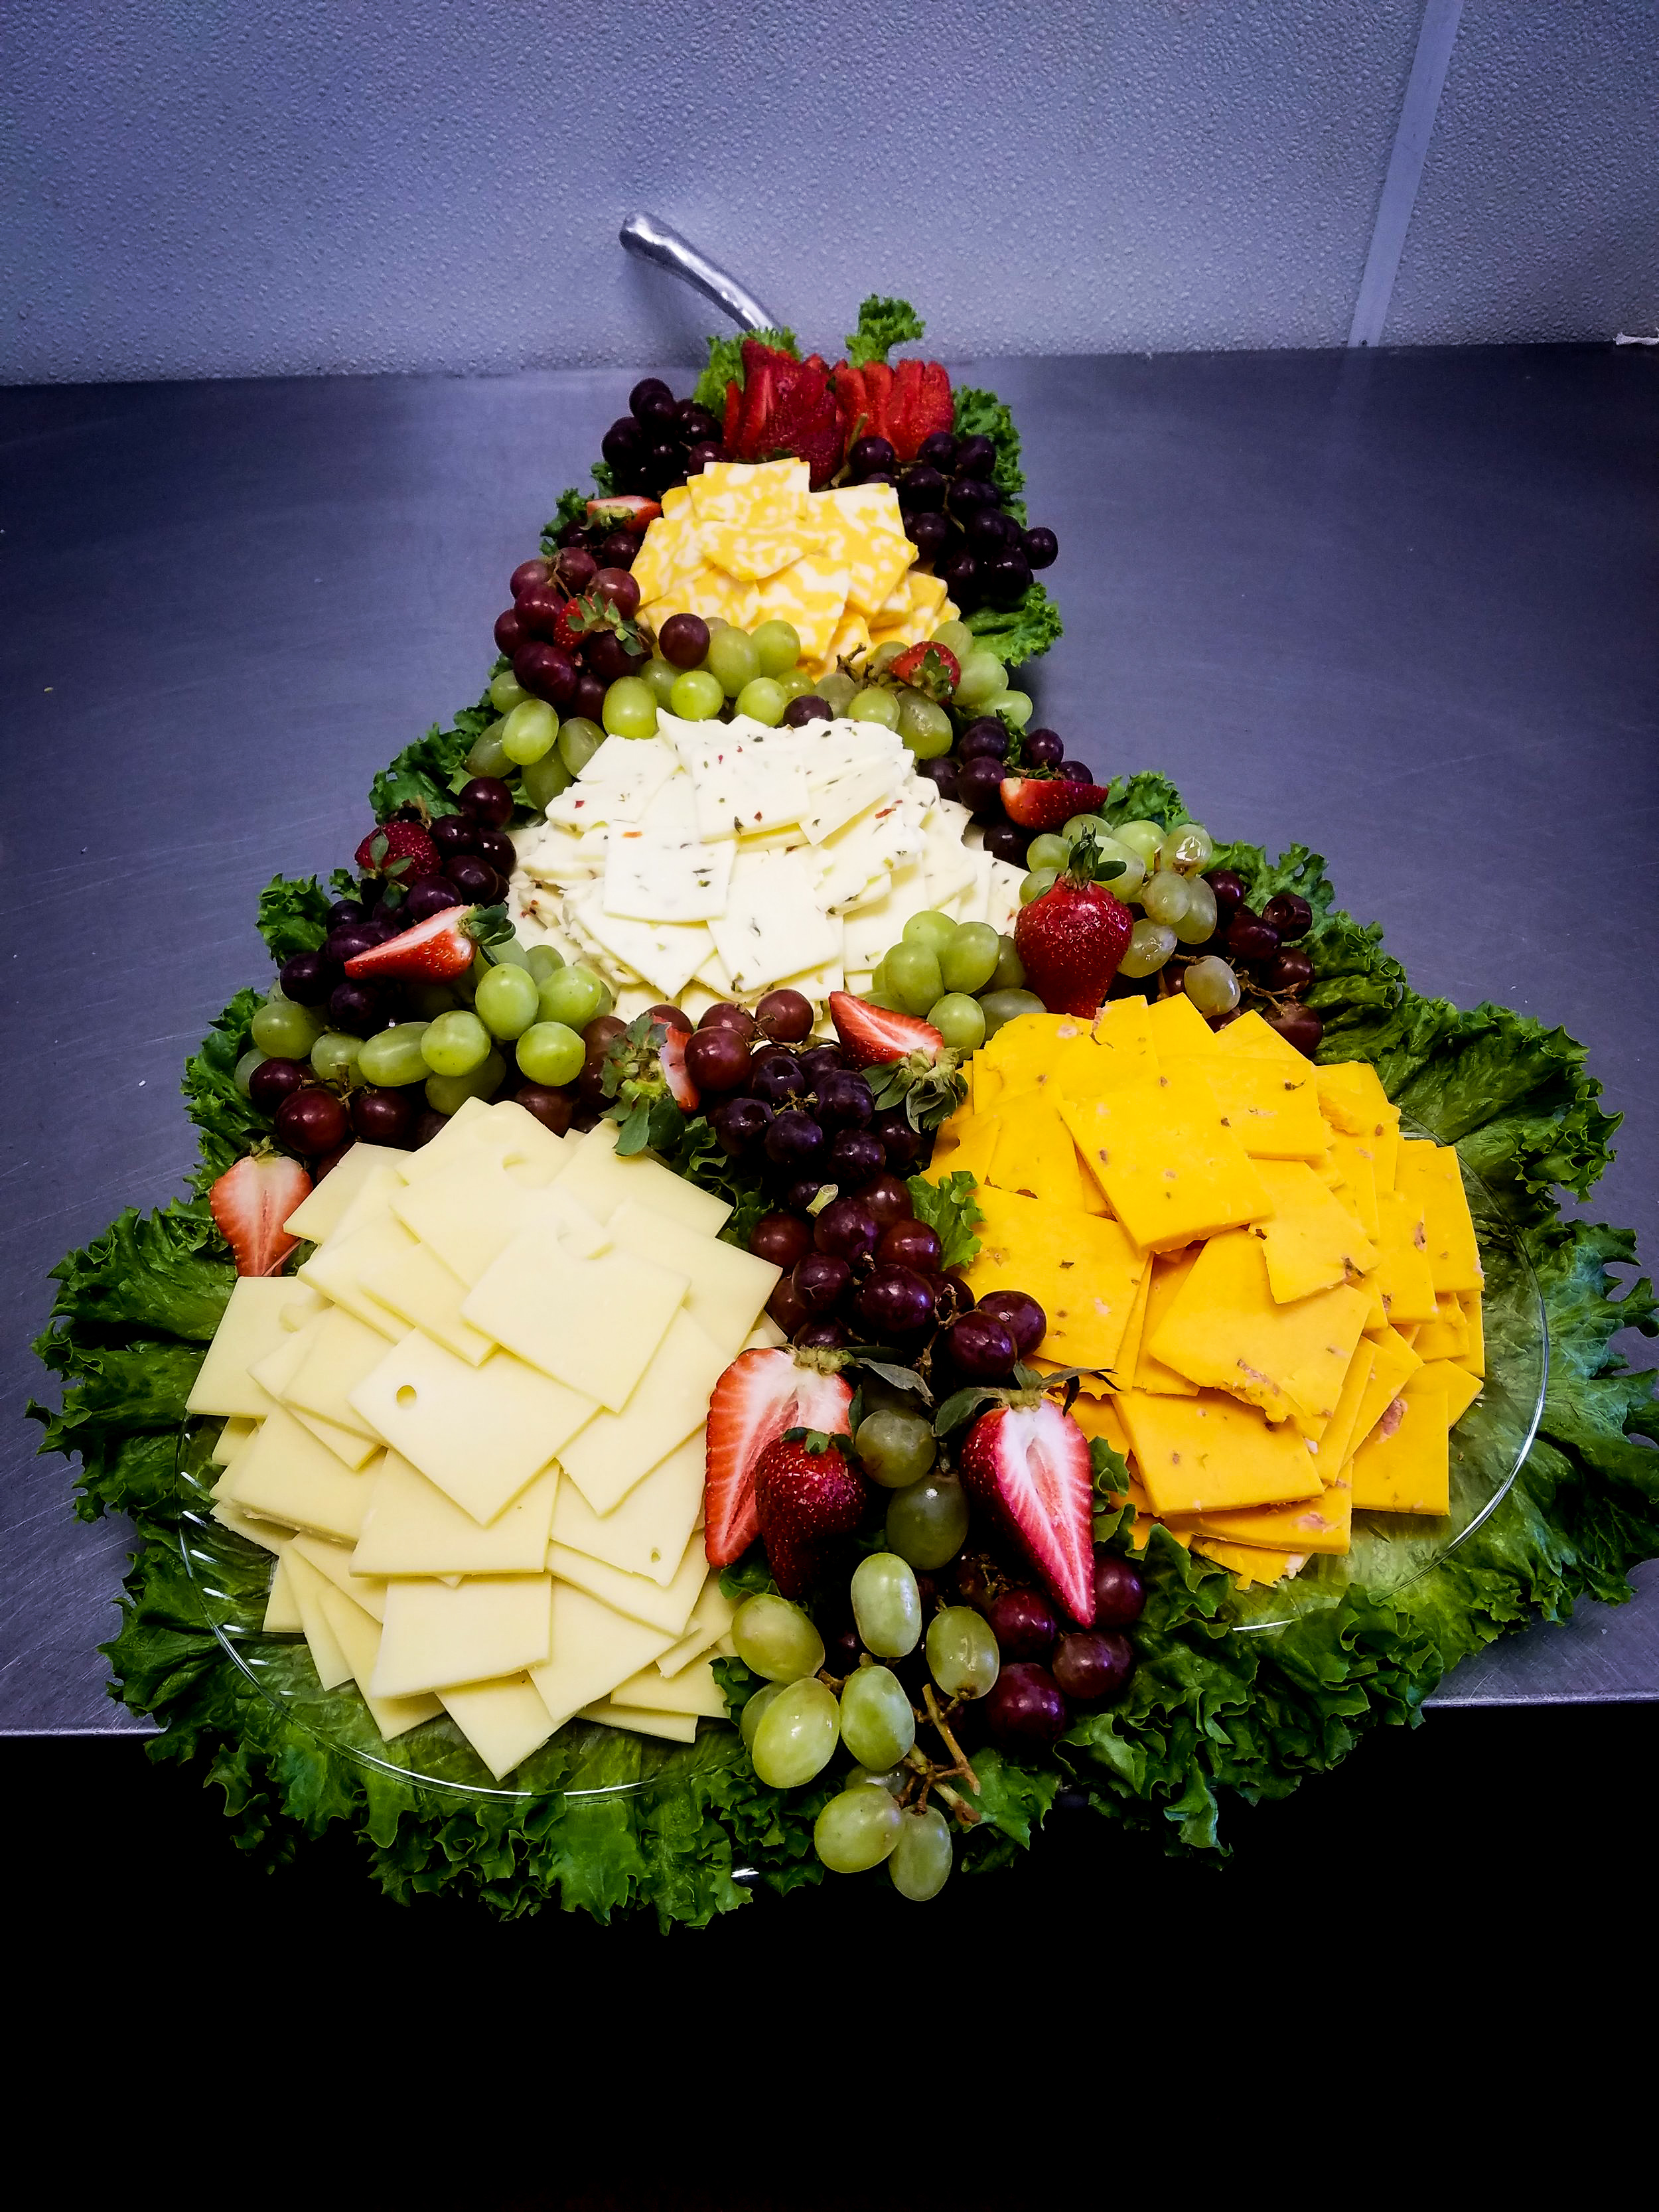 Party Platter Page 2-2.jpg